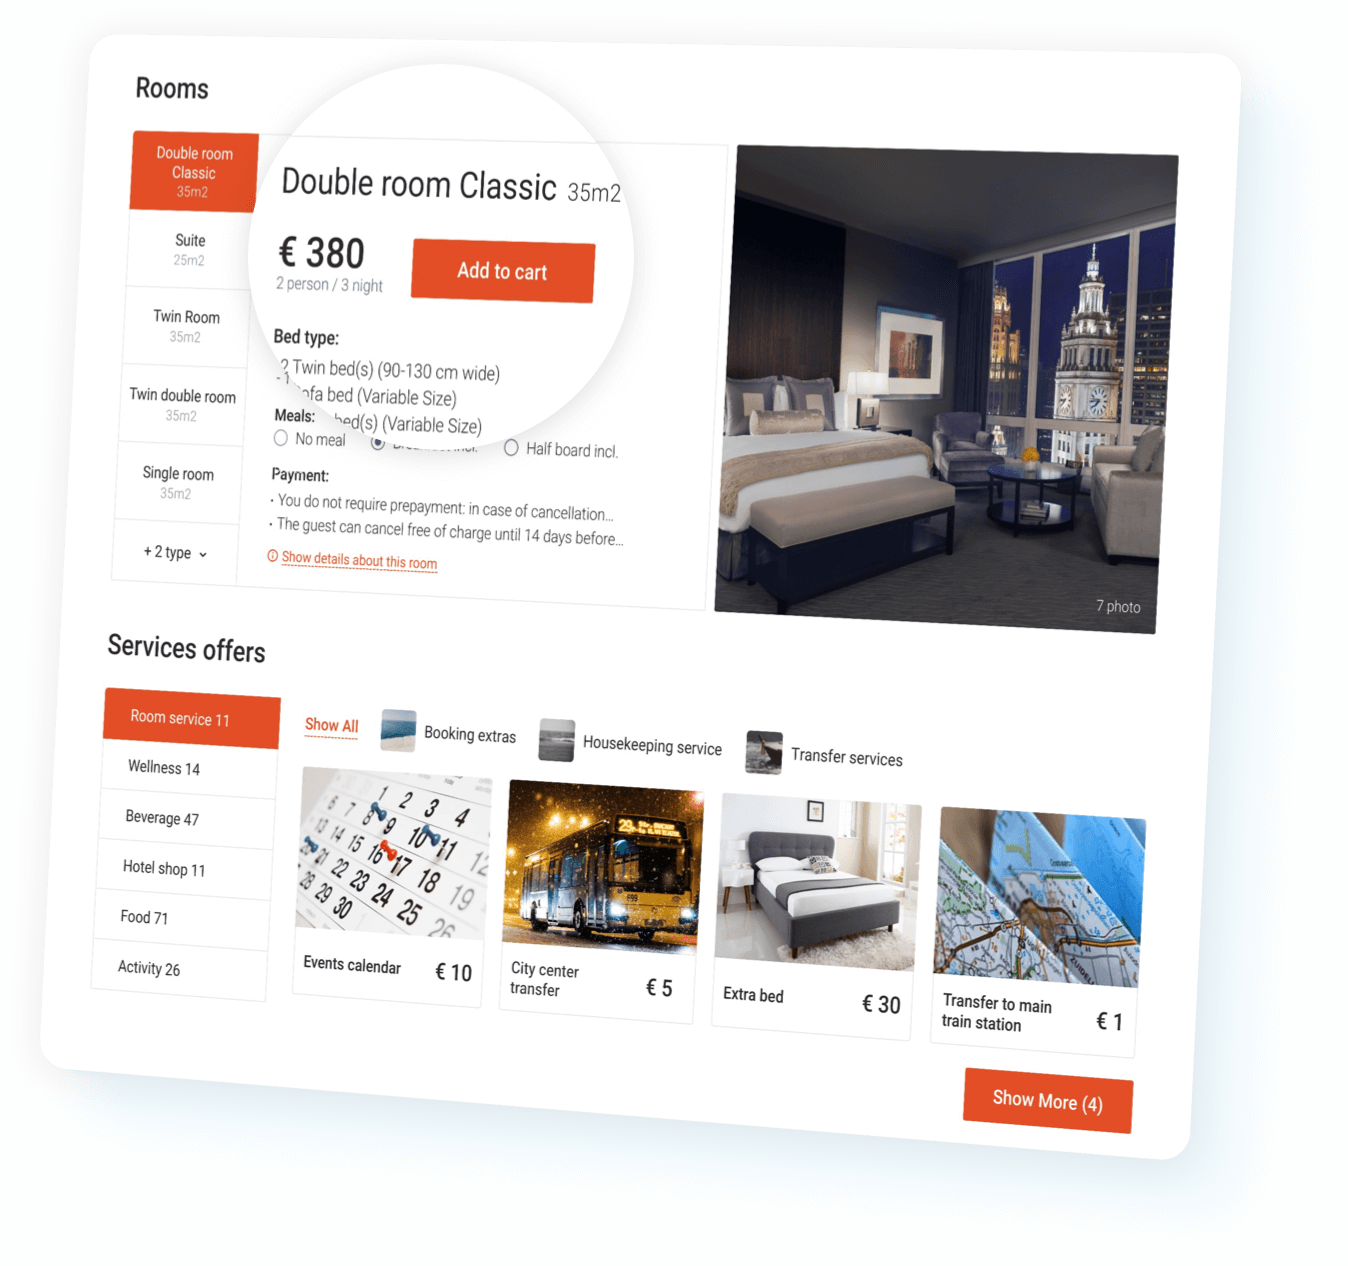 Direct booking of rooms and services